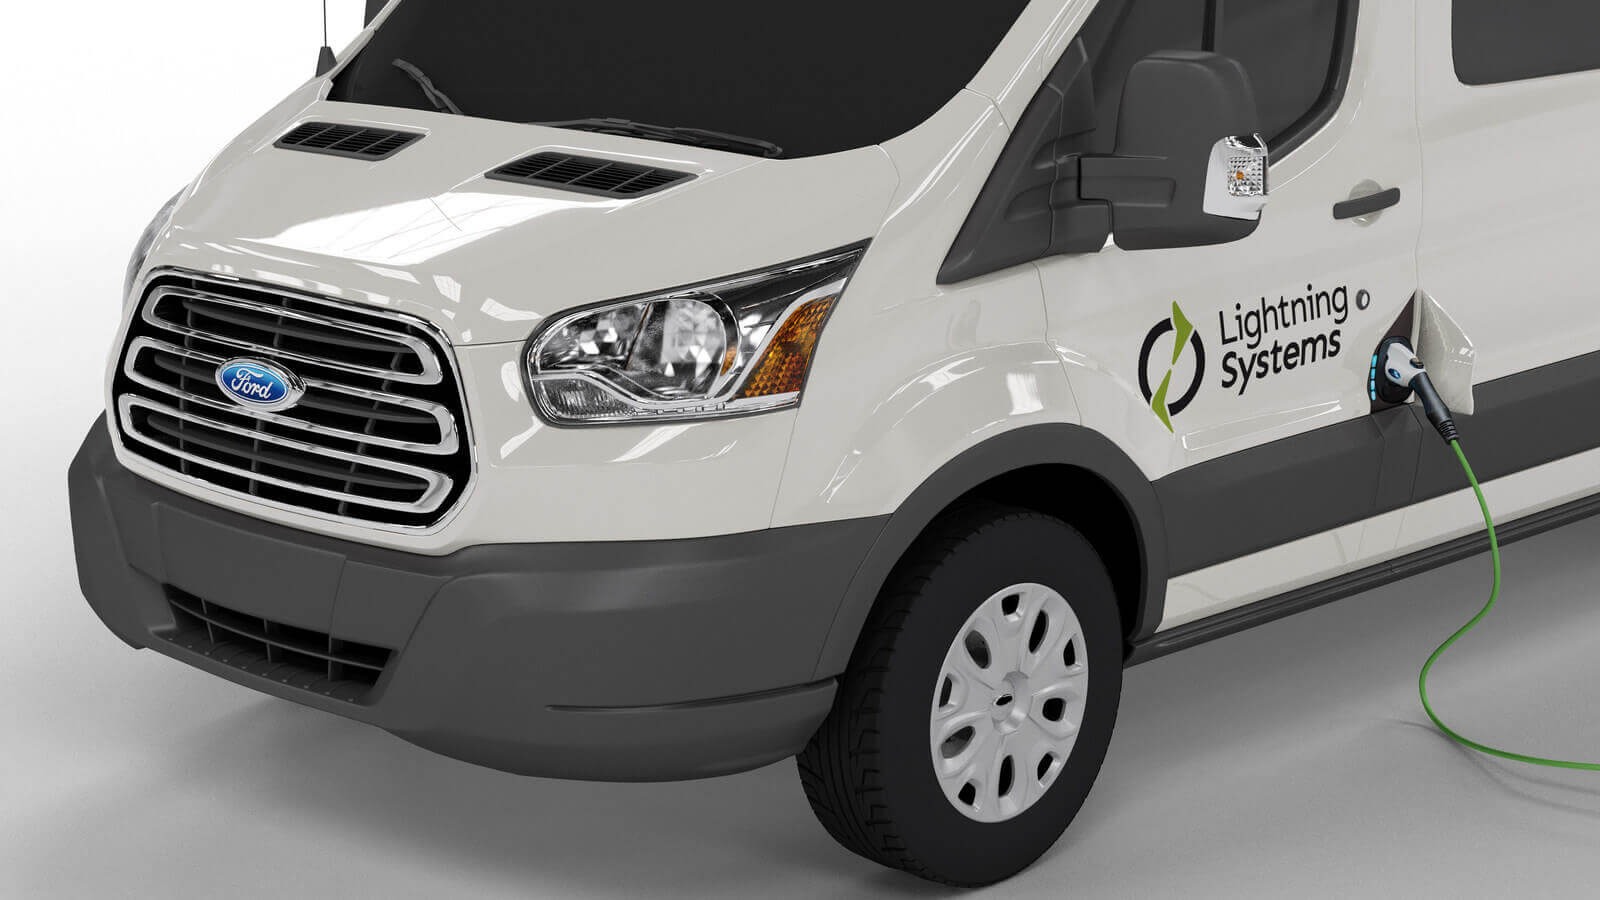 A Developer Of Efficiency And Emissions Improvement Solutions For Fleets Says Its New Lightningelectric Zero Package The Ford Transit